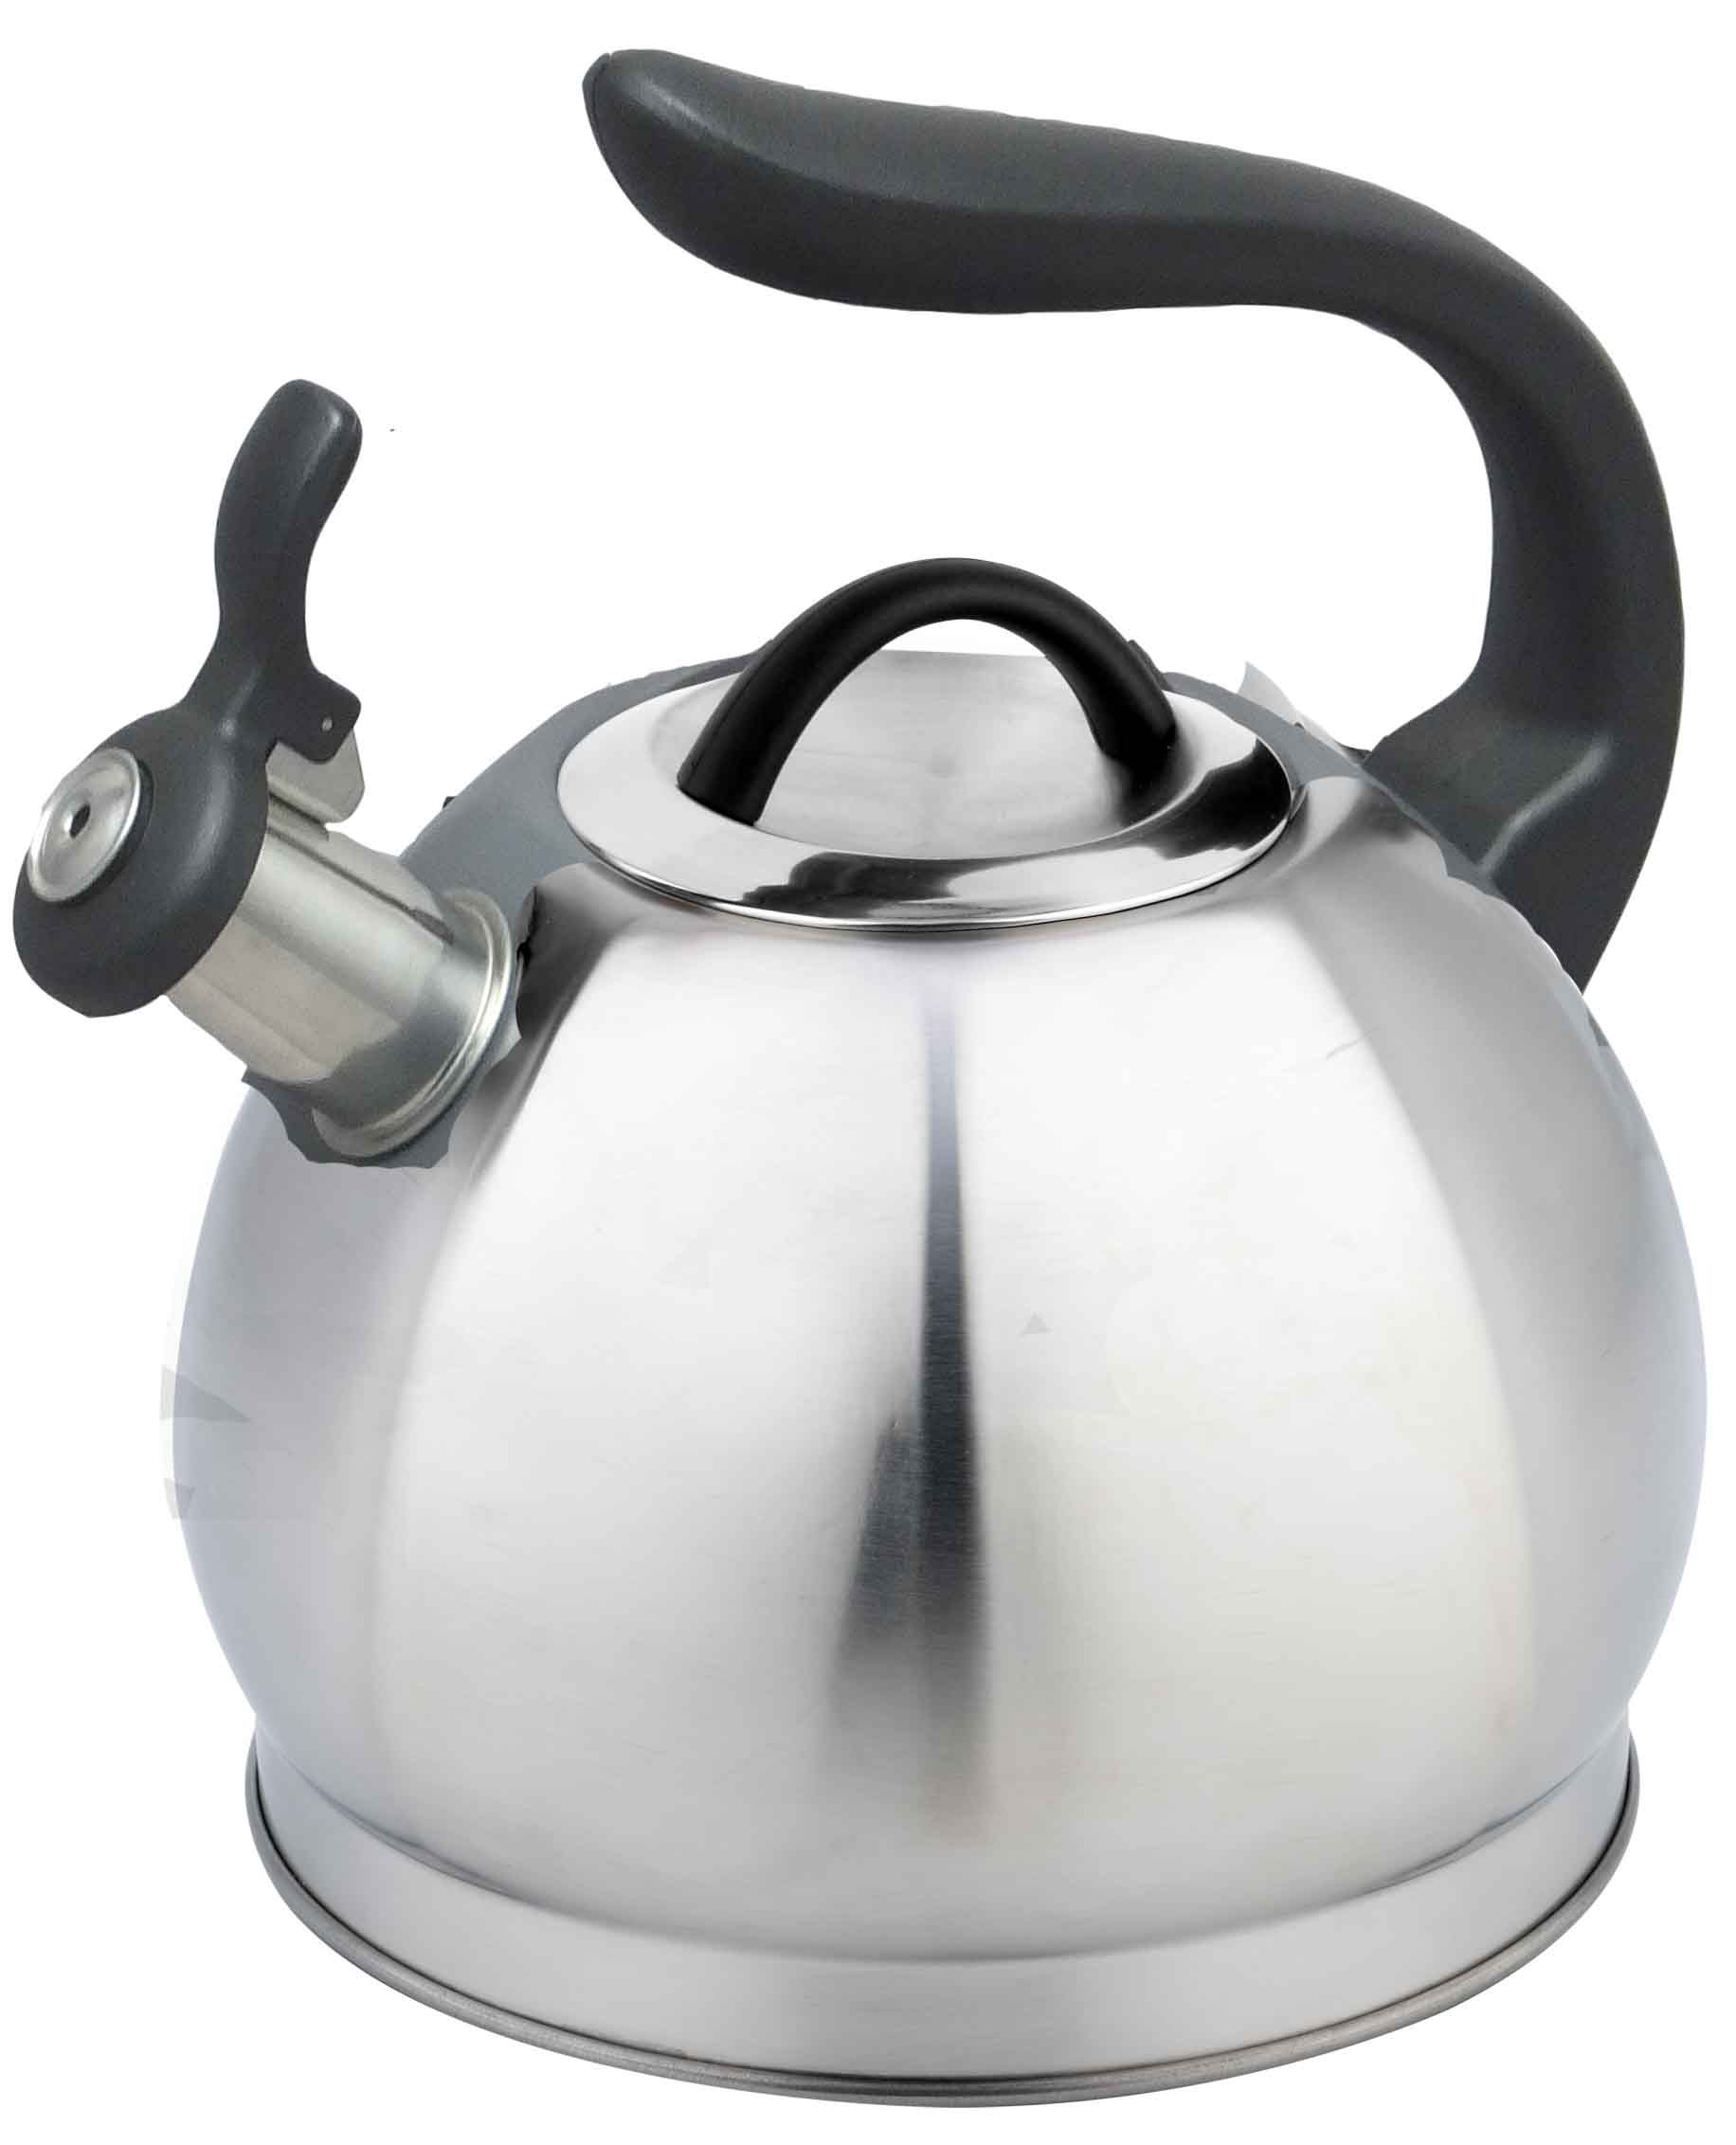 3.0Litre octagon apple shape whistling